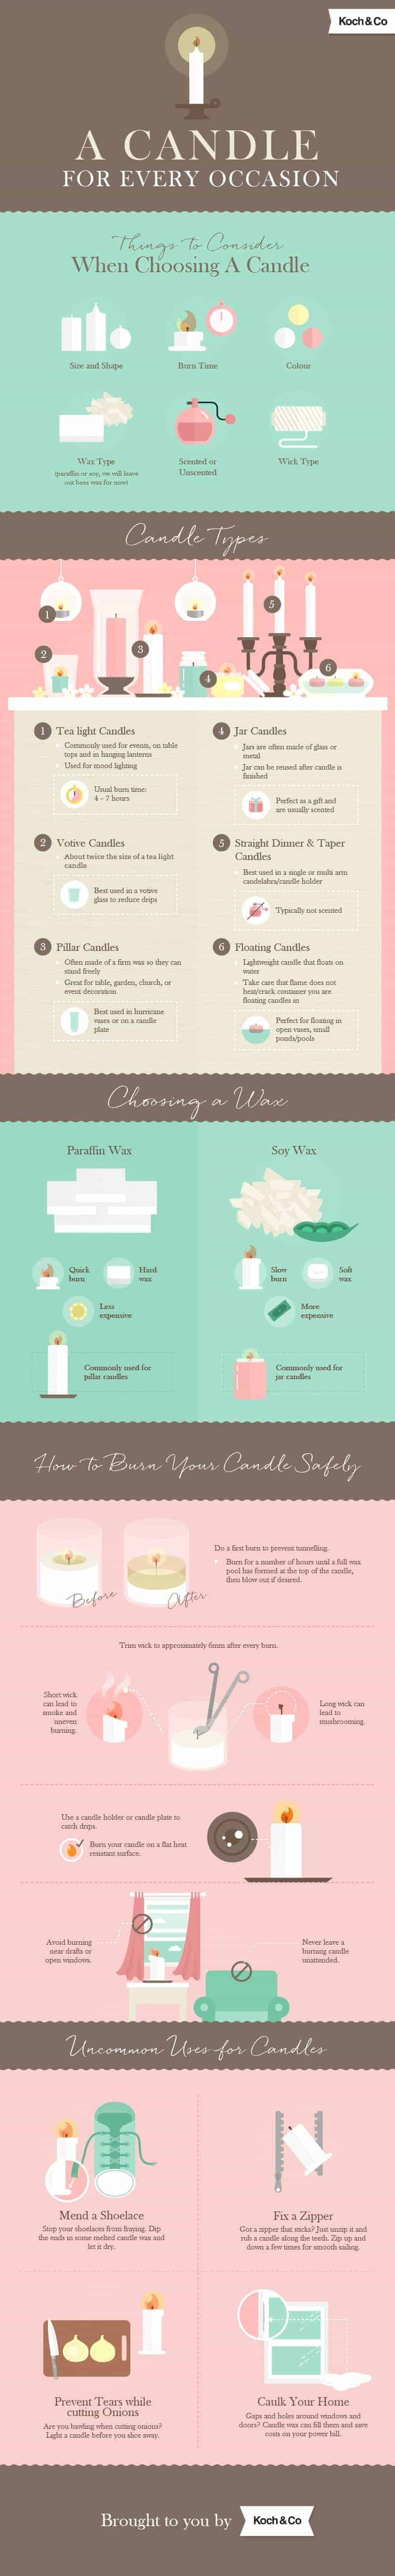 candle business infographic